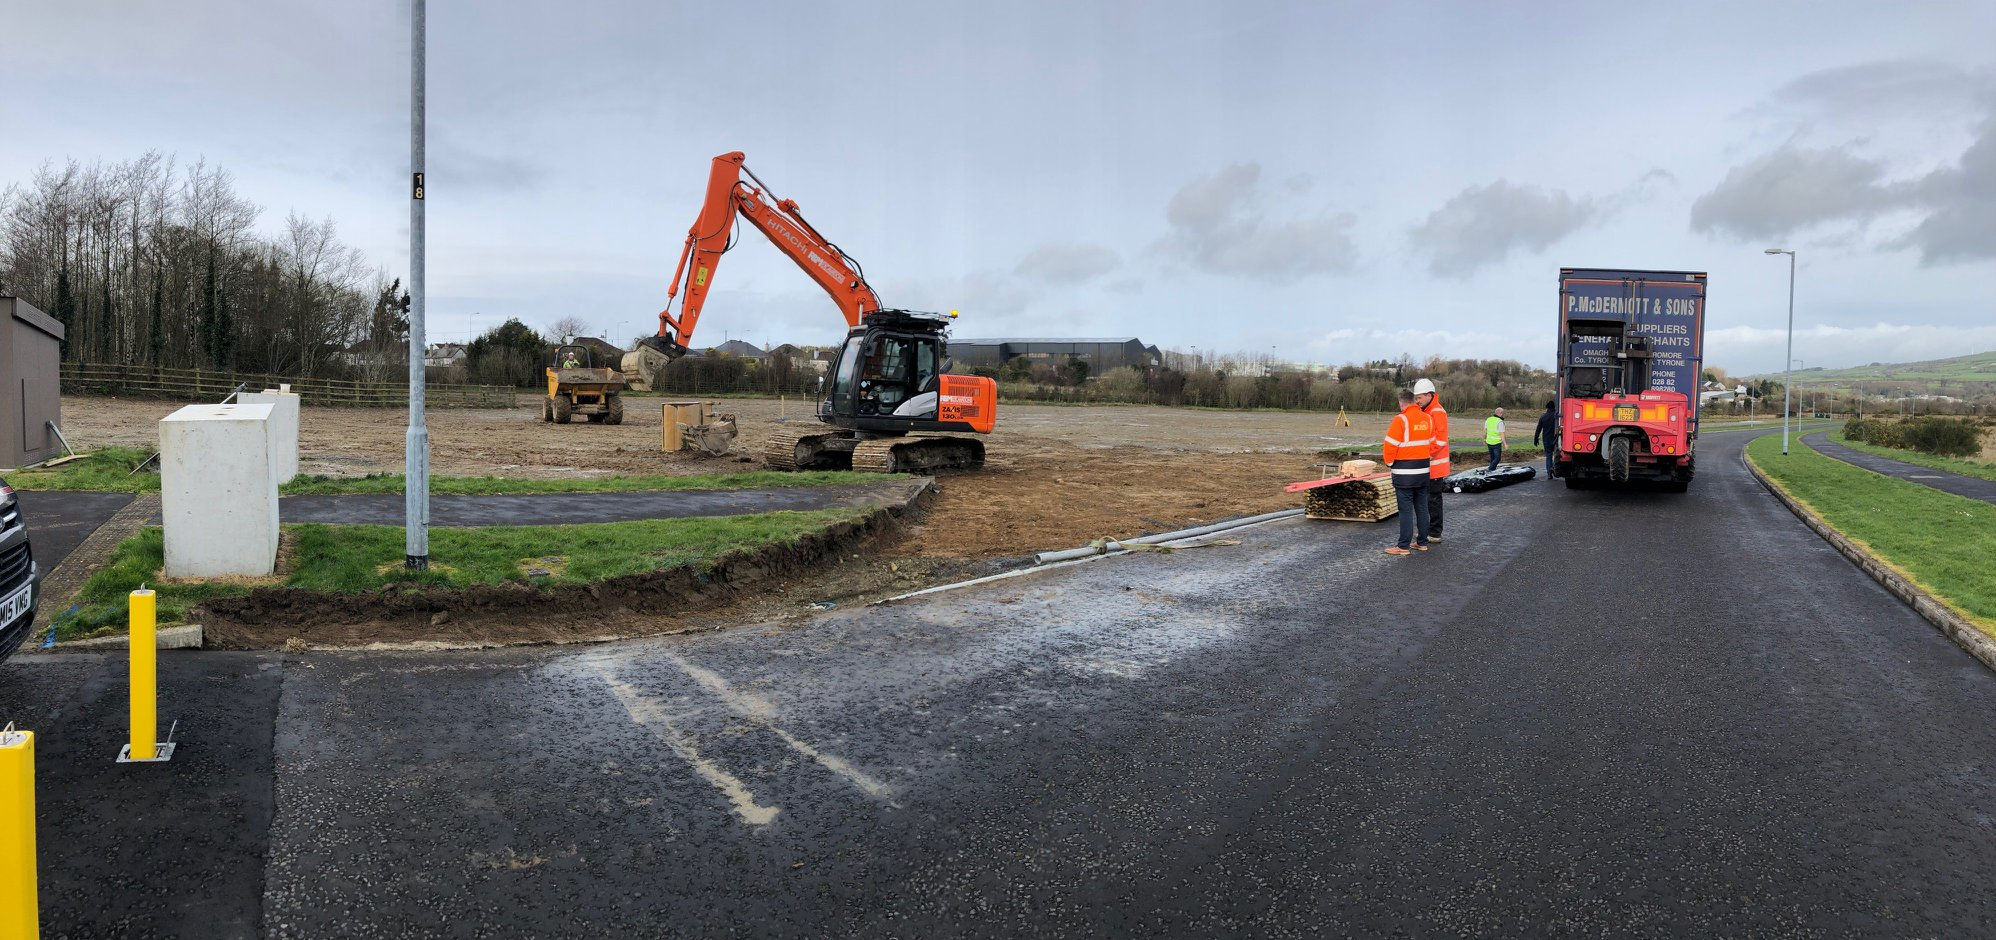 The first week of the KES Group factory build is now complete! The diggers are in and our entrance to Phase 1 has been created.